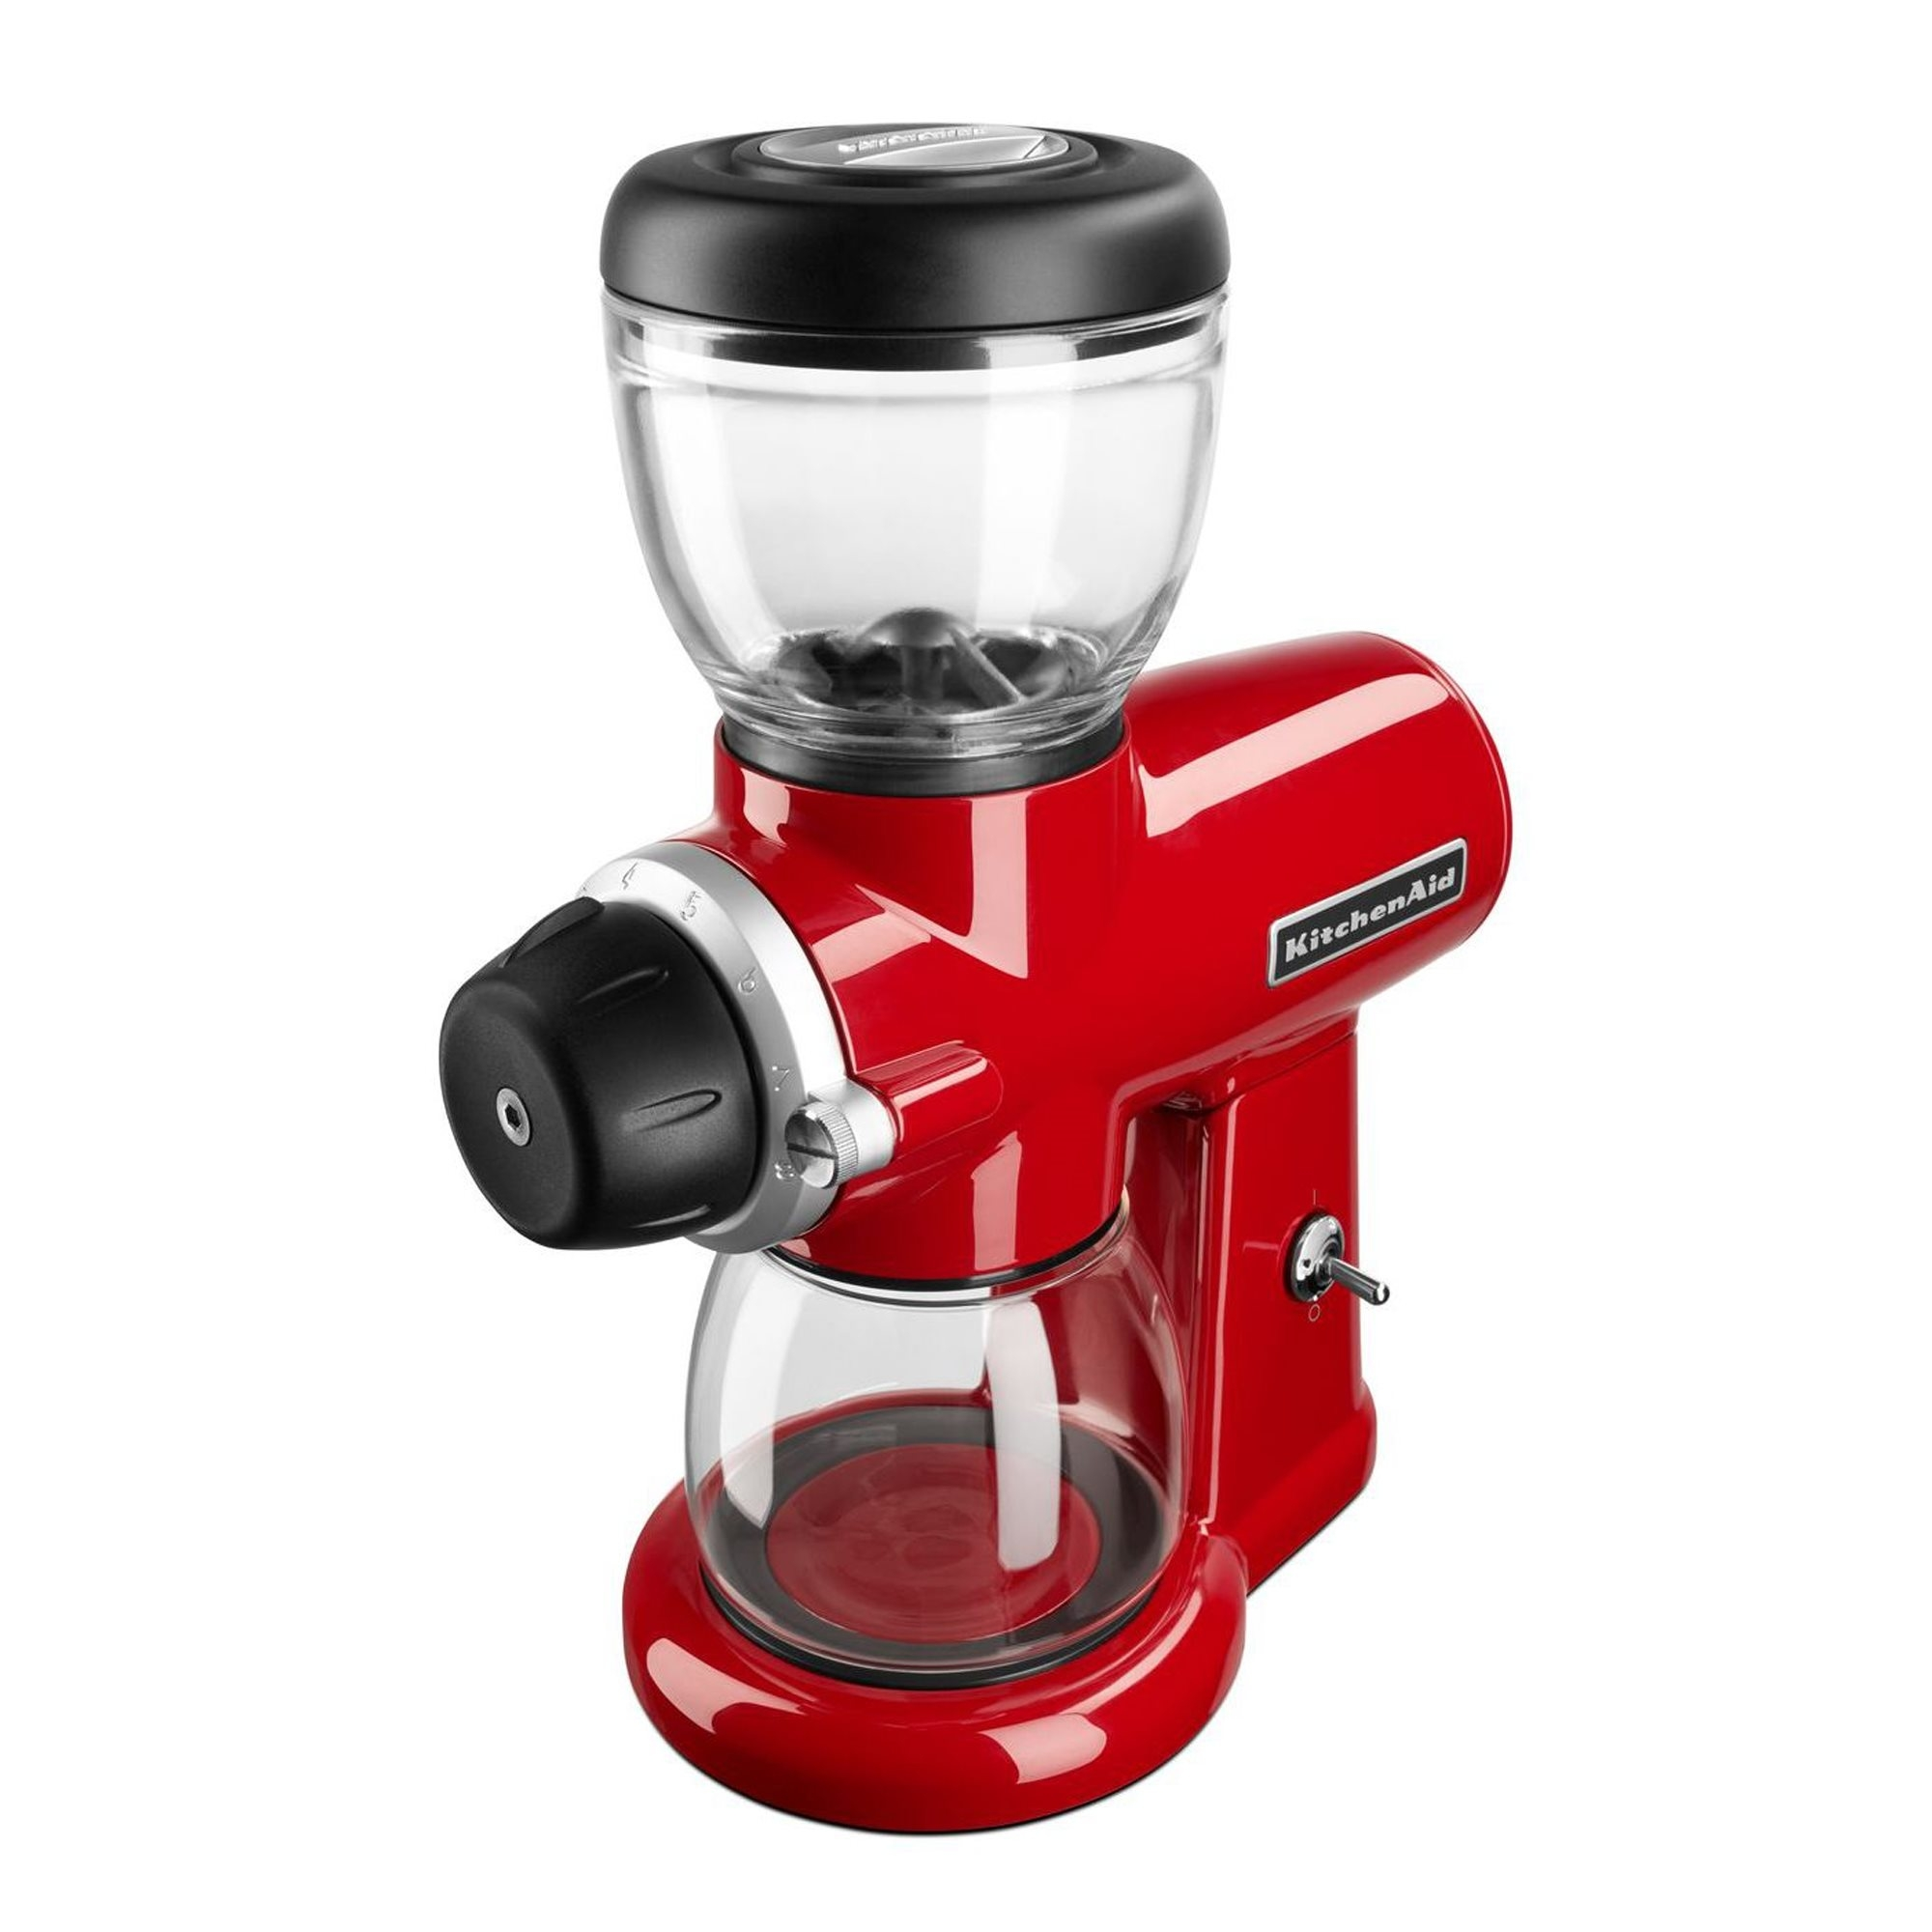 Rasnita Electrica Cafea Empire Kitchenaid Rosu